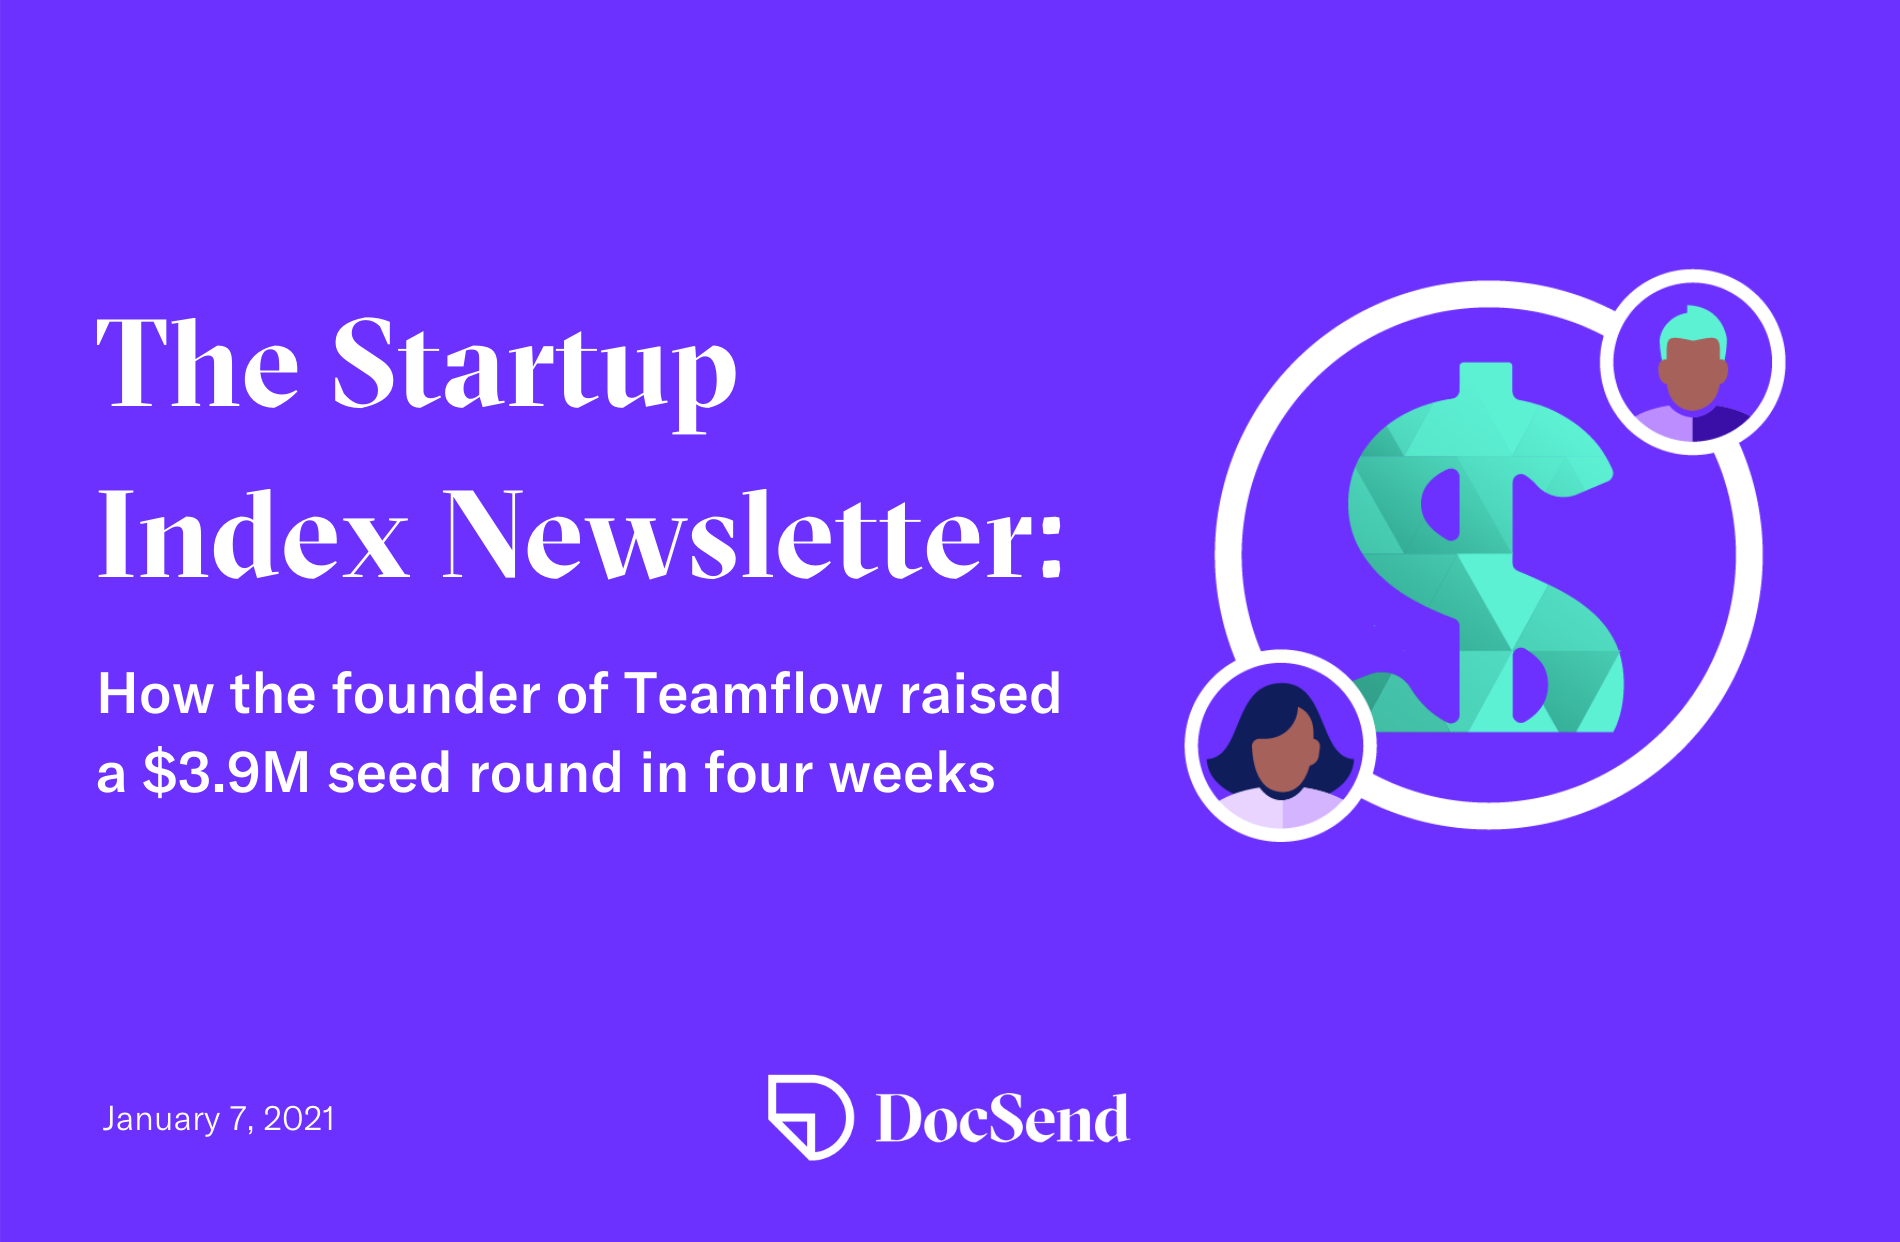 startup index newsletter florent crevillo teamflow founder